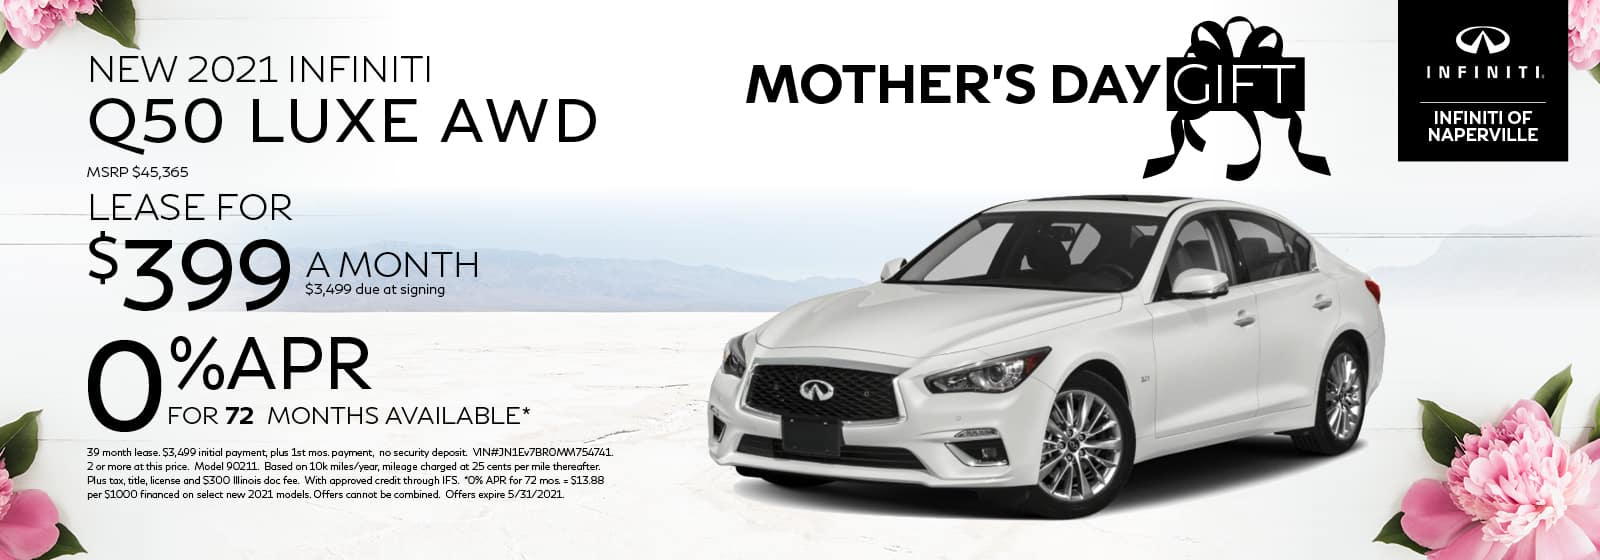 2021 INFINITI Q50 Lease or Finance Offer   INFINITI of Naperville